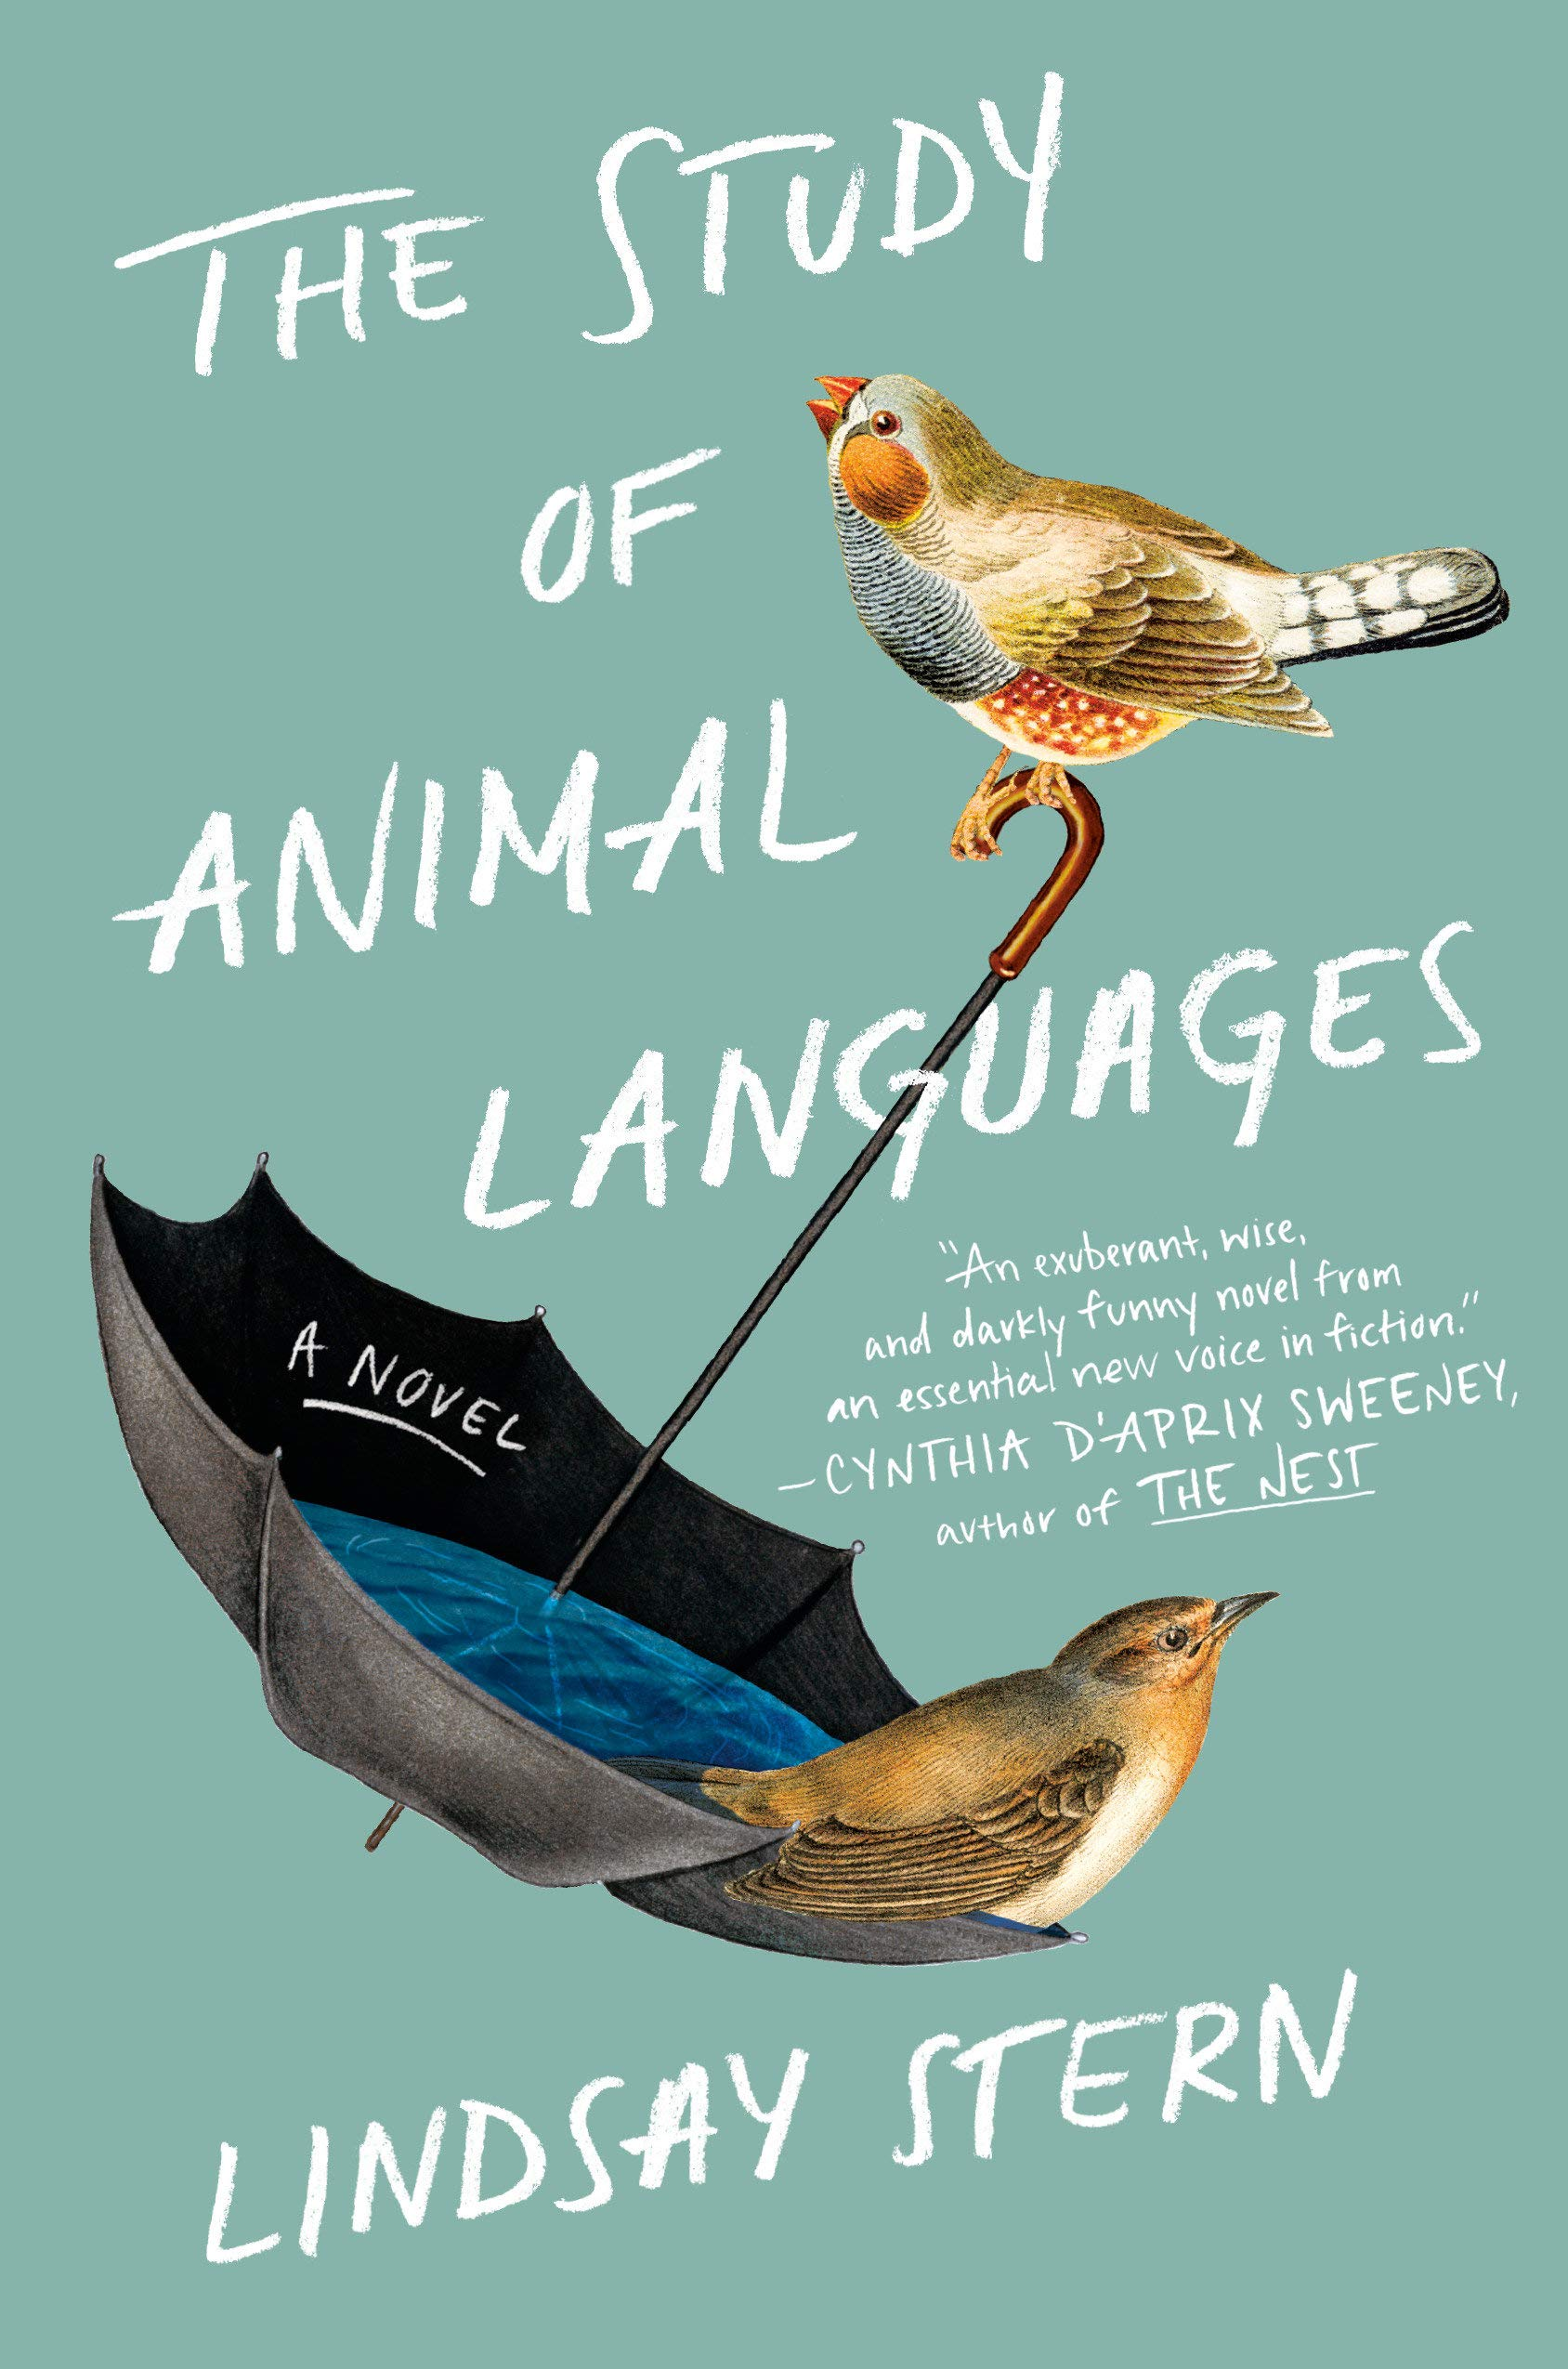 LF The Study of Animal Languages.jpg